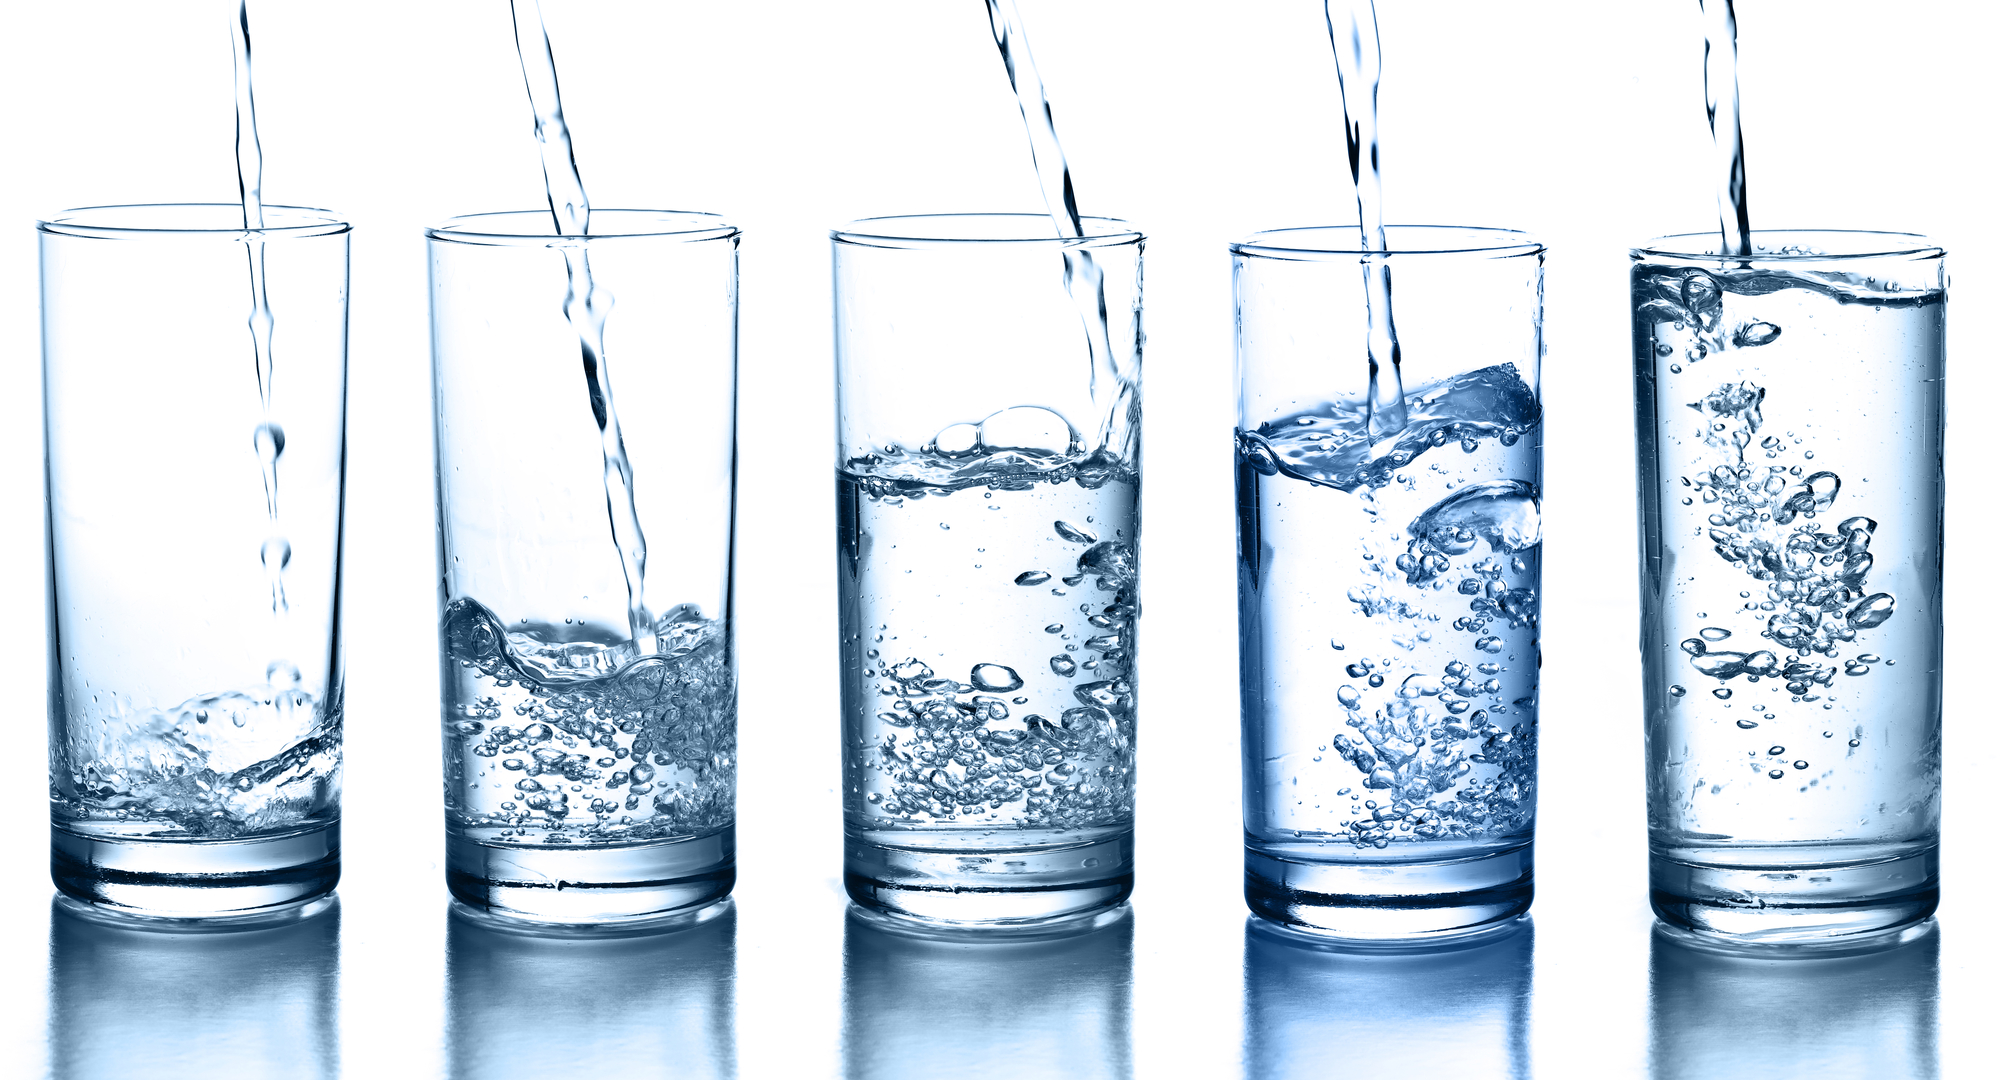 Water glasses - Waterlogged. 8 Glasses Of Water Per Day Debunked.